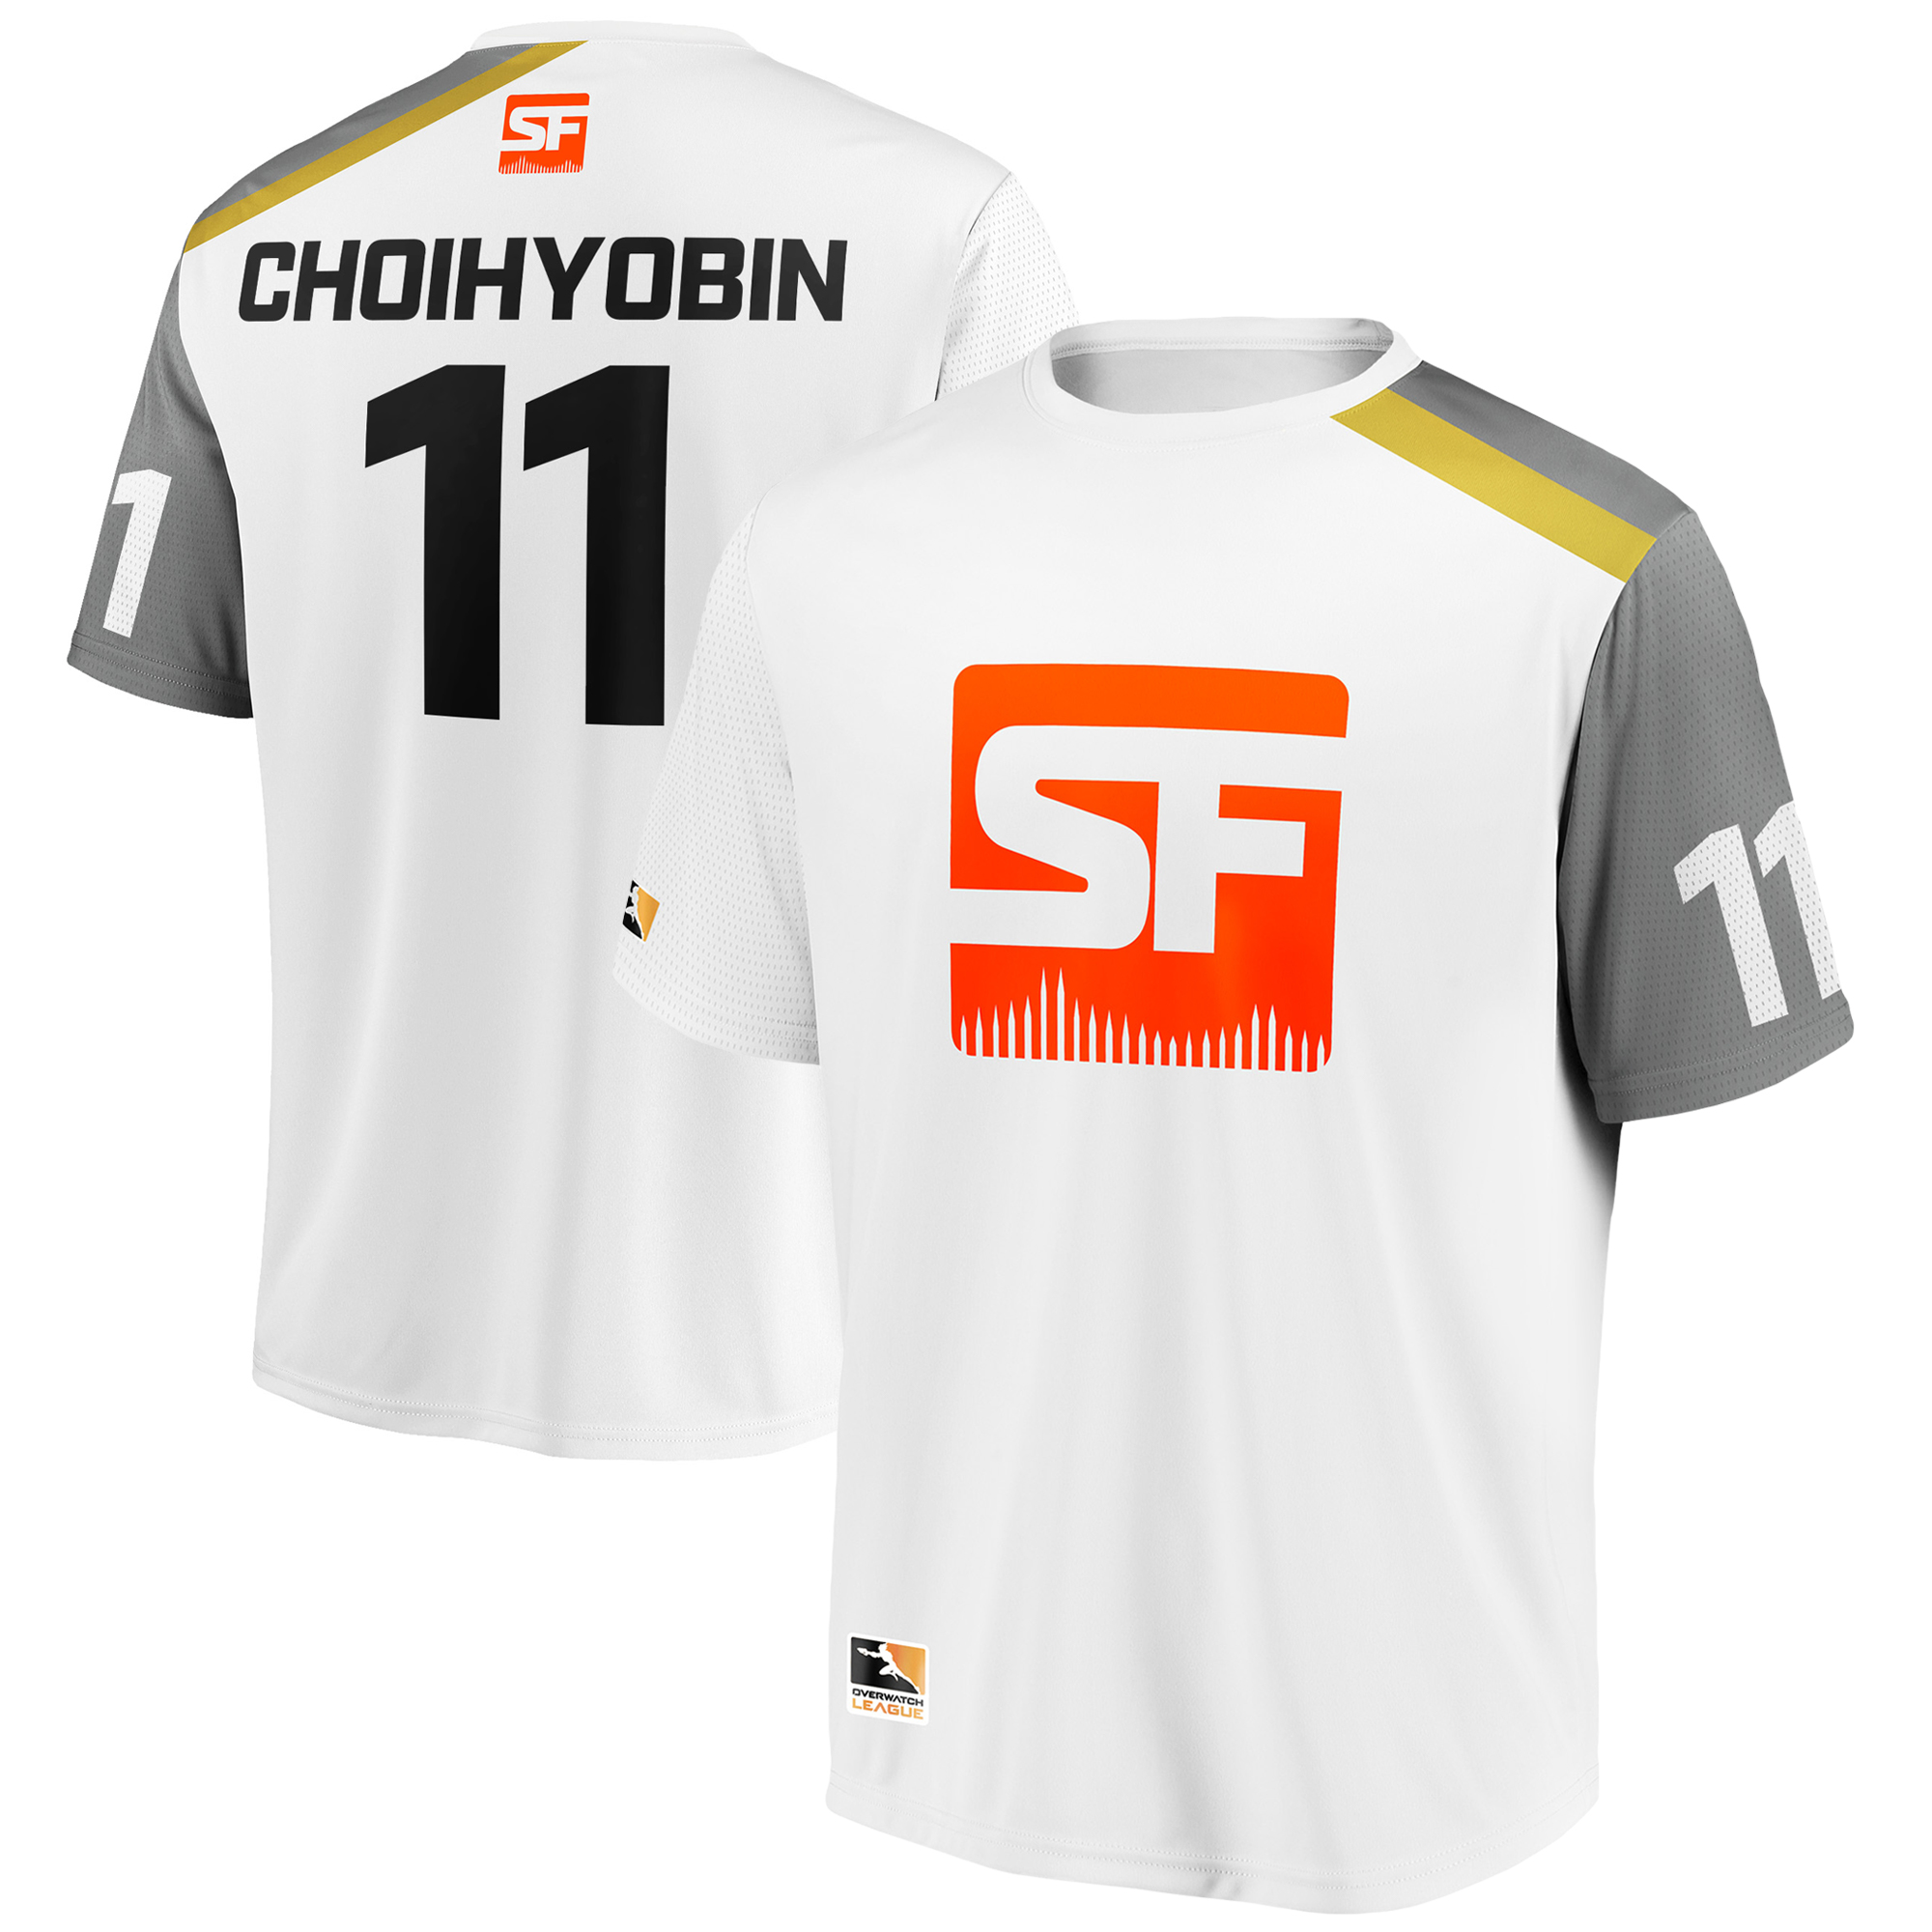 Choihyobin San Francisco Shock Overwatch League Replica Away Jersey - White